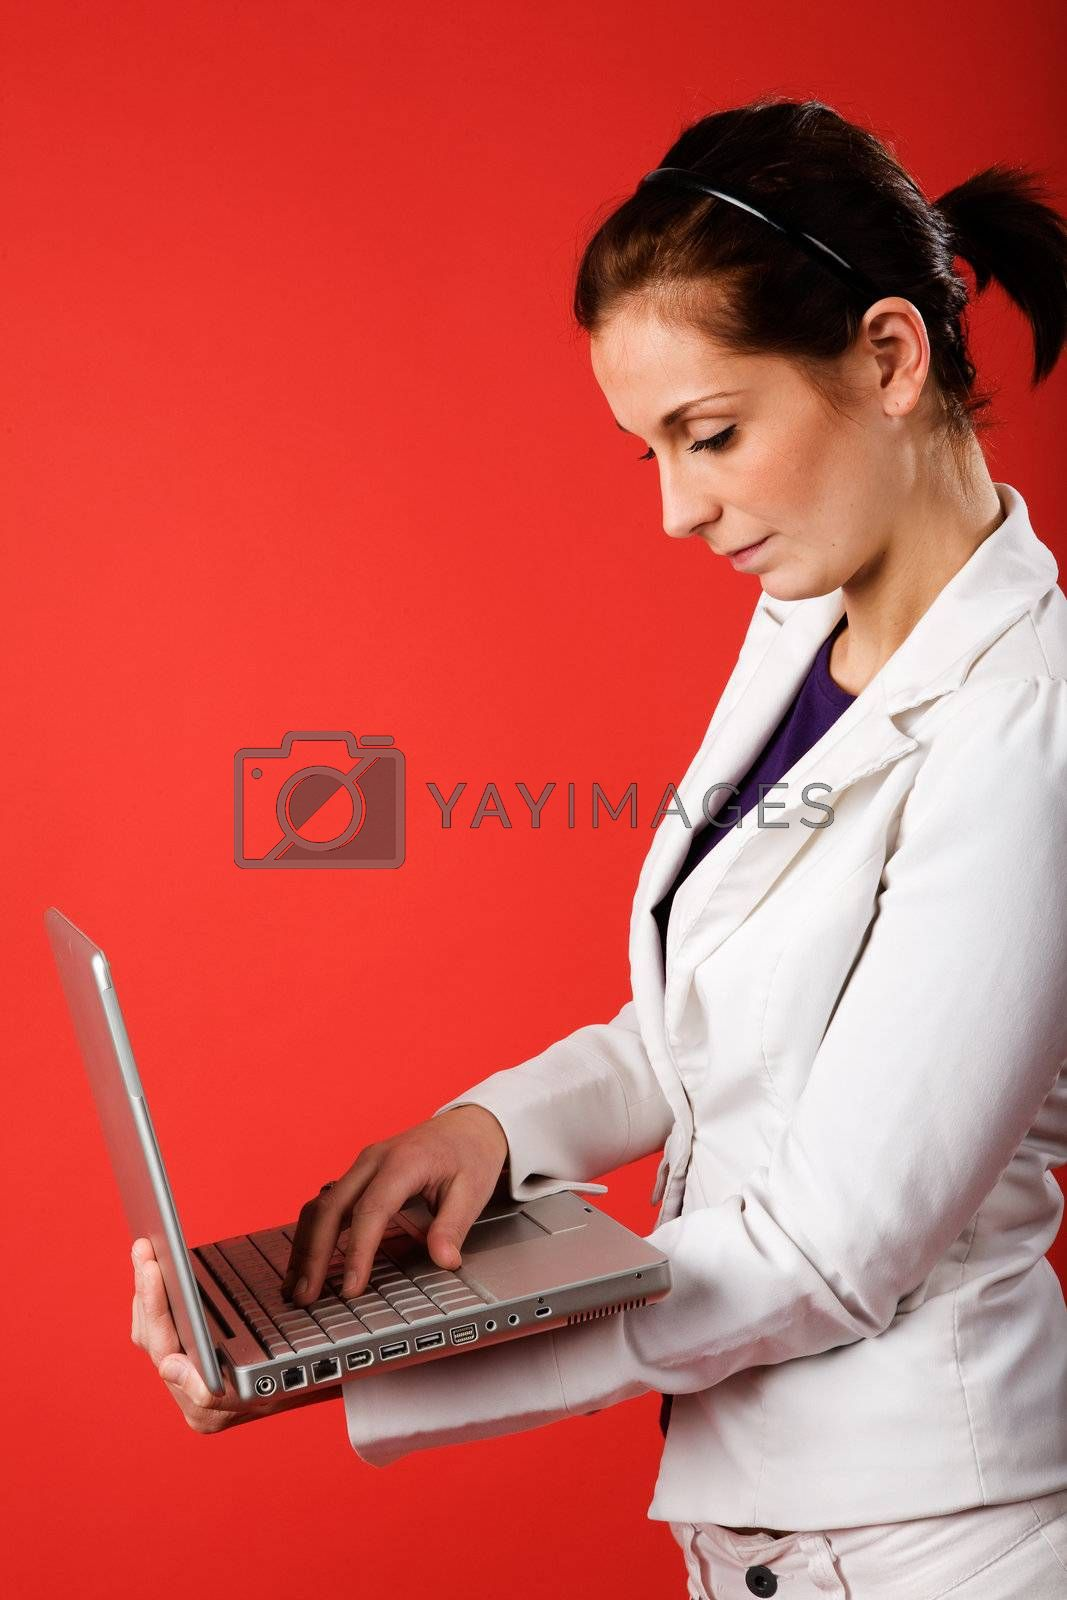 A young business woman or student using a laptop with a strong red background